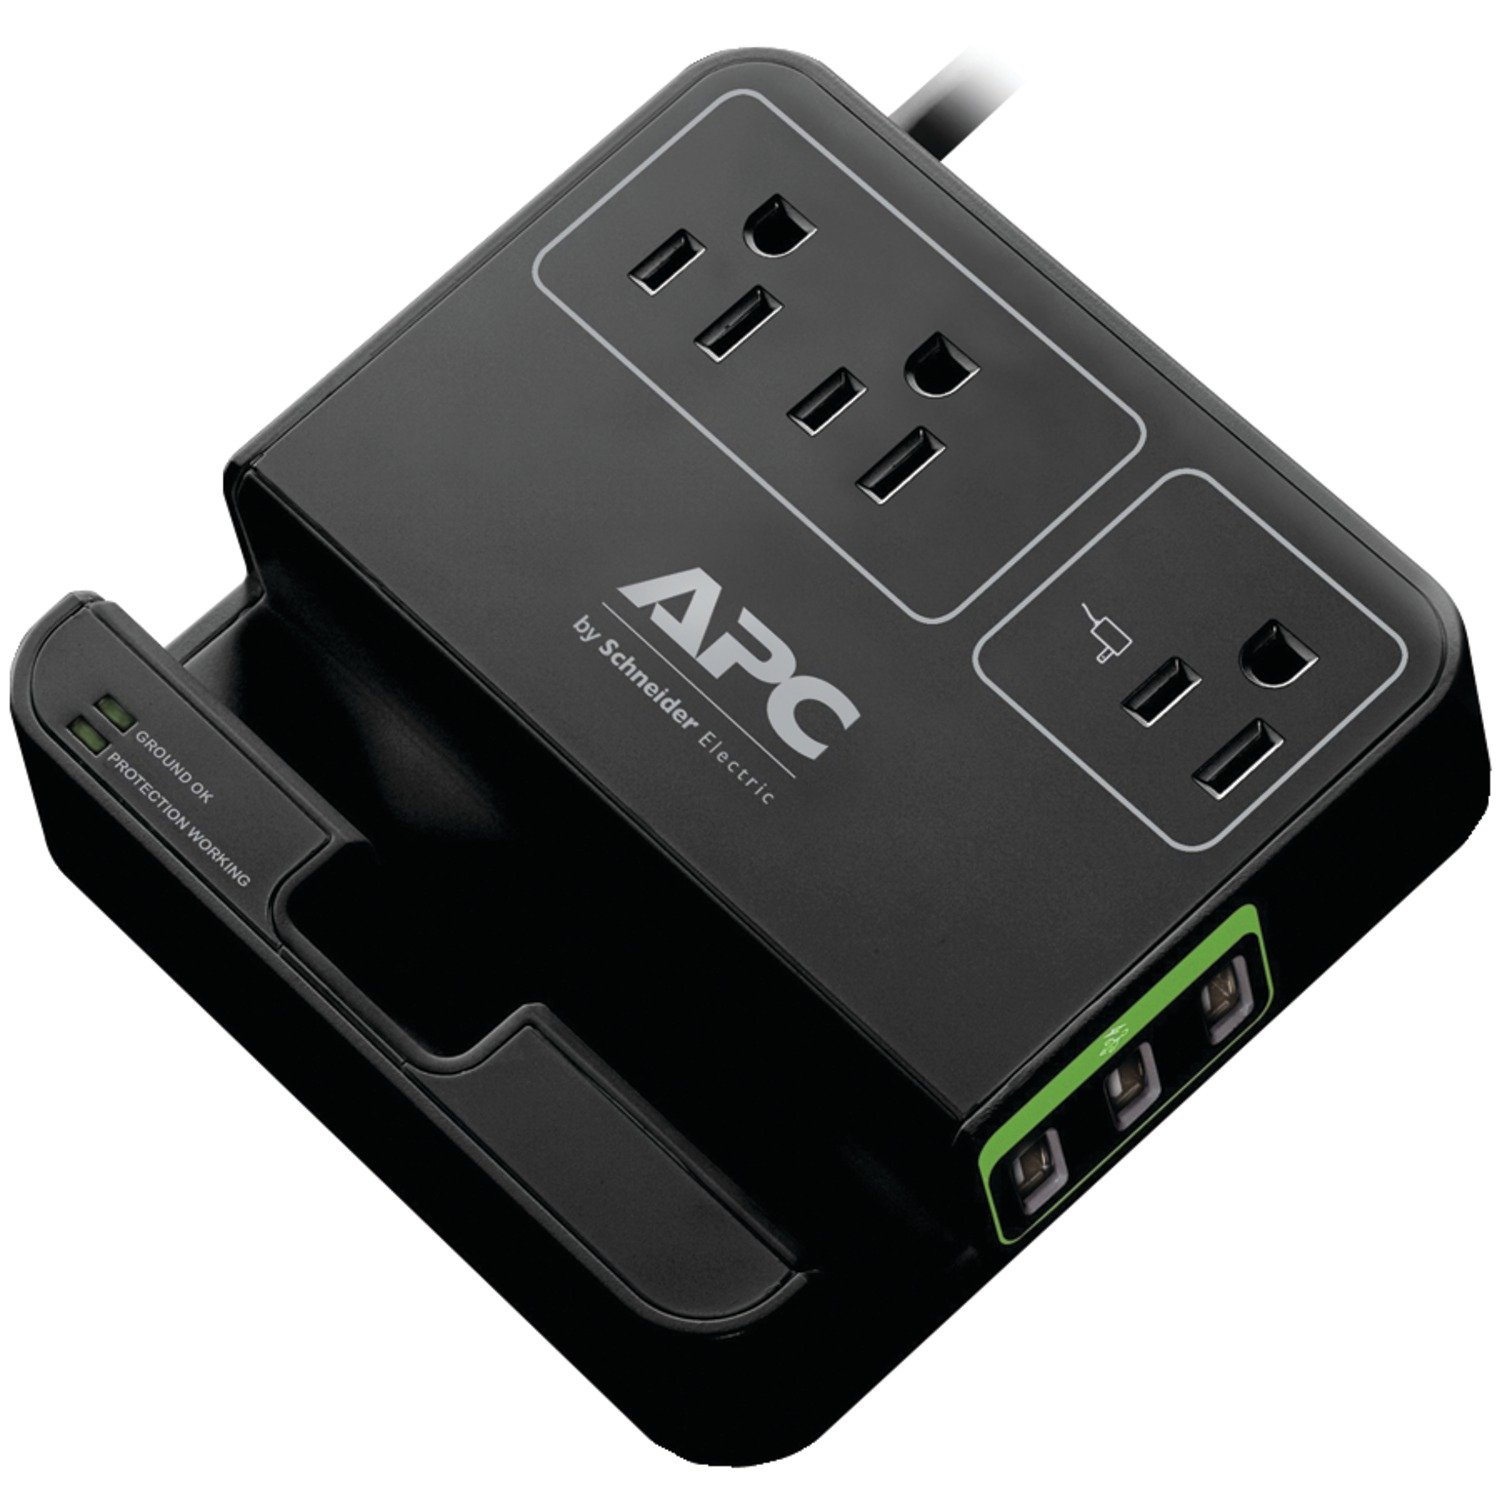 APC P3U3B Essential Surge Arrest, 3 Outlets, 3 USB Charging Ports, 120V, Black